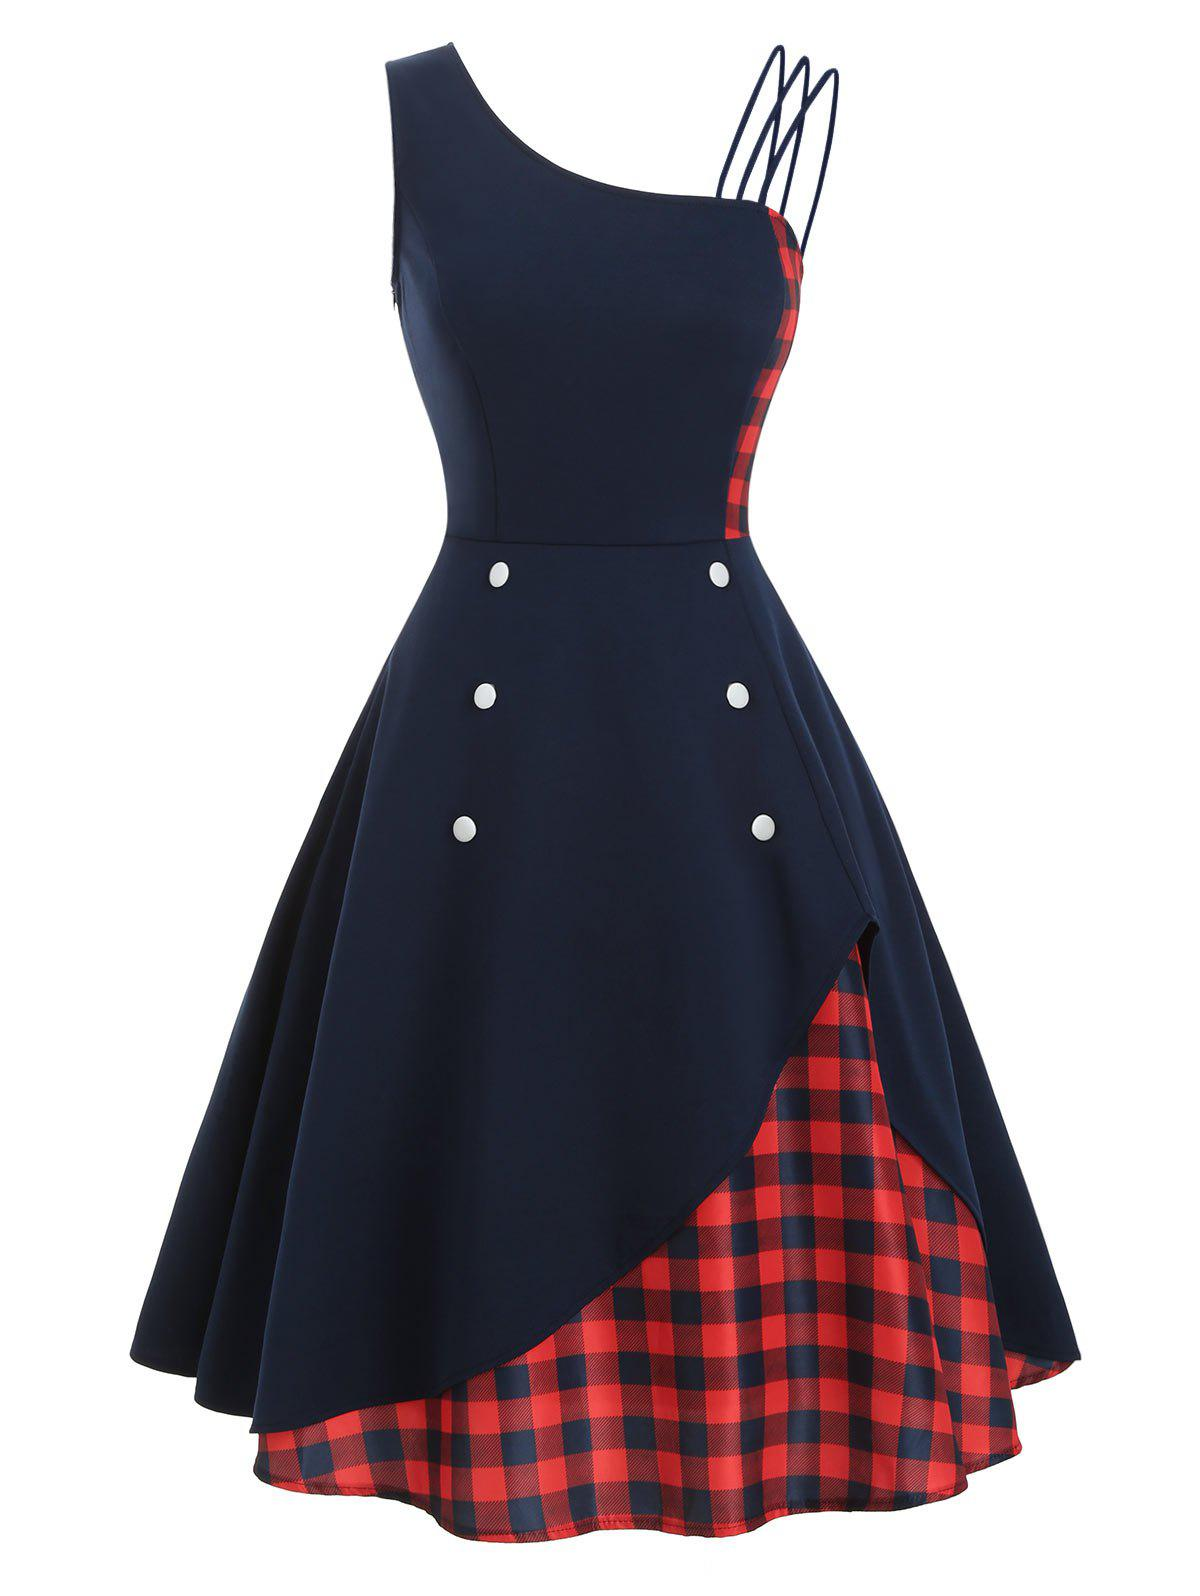 Skew Neck Button Embellished Colorblock Rockabilly Style Dress - DEEP BLUE S